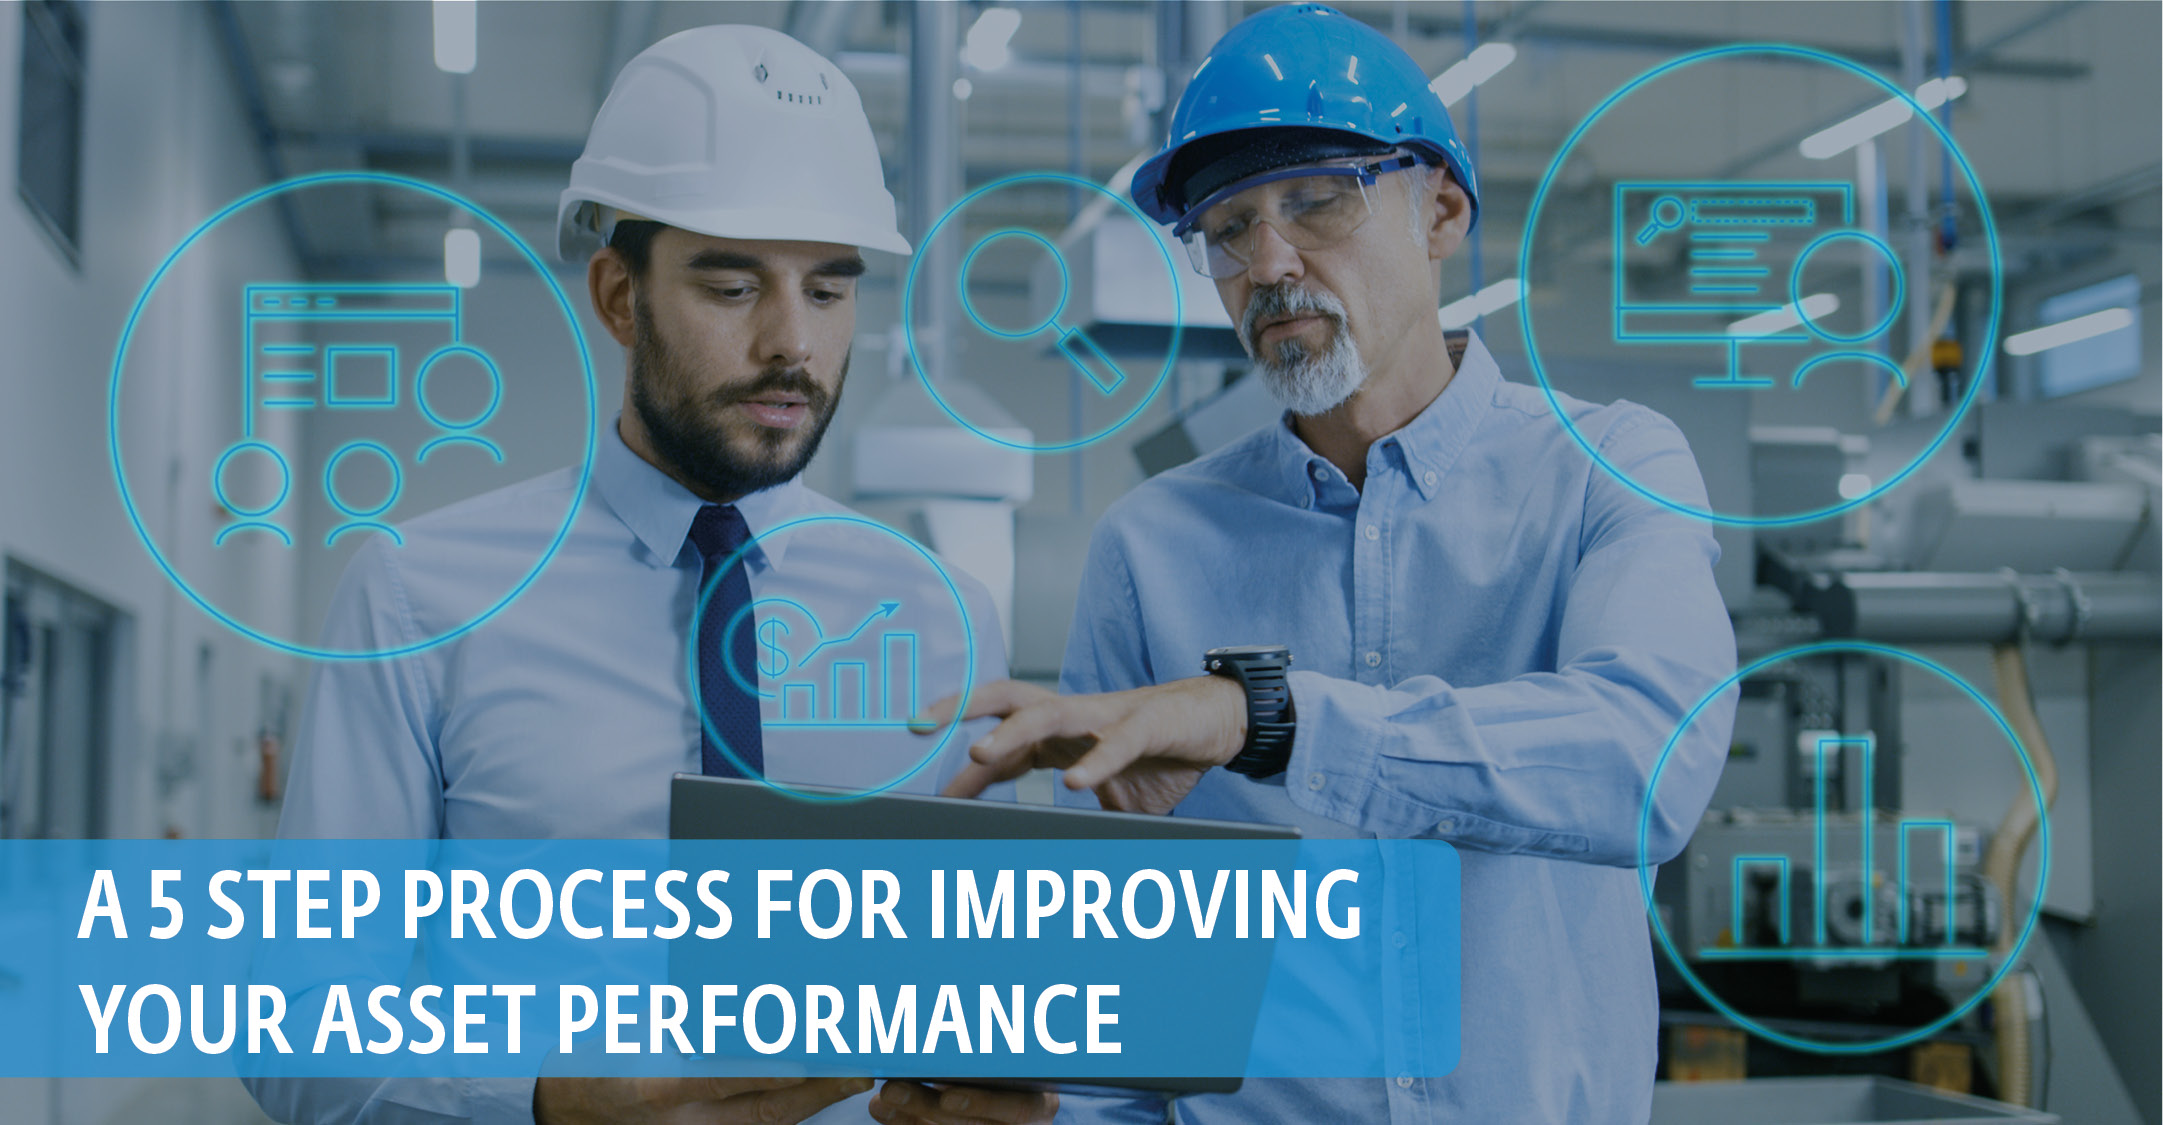 A 5 STEP PROCESS FOR IMPROVING YOUR ASSET PERFORMANCE